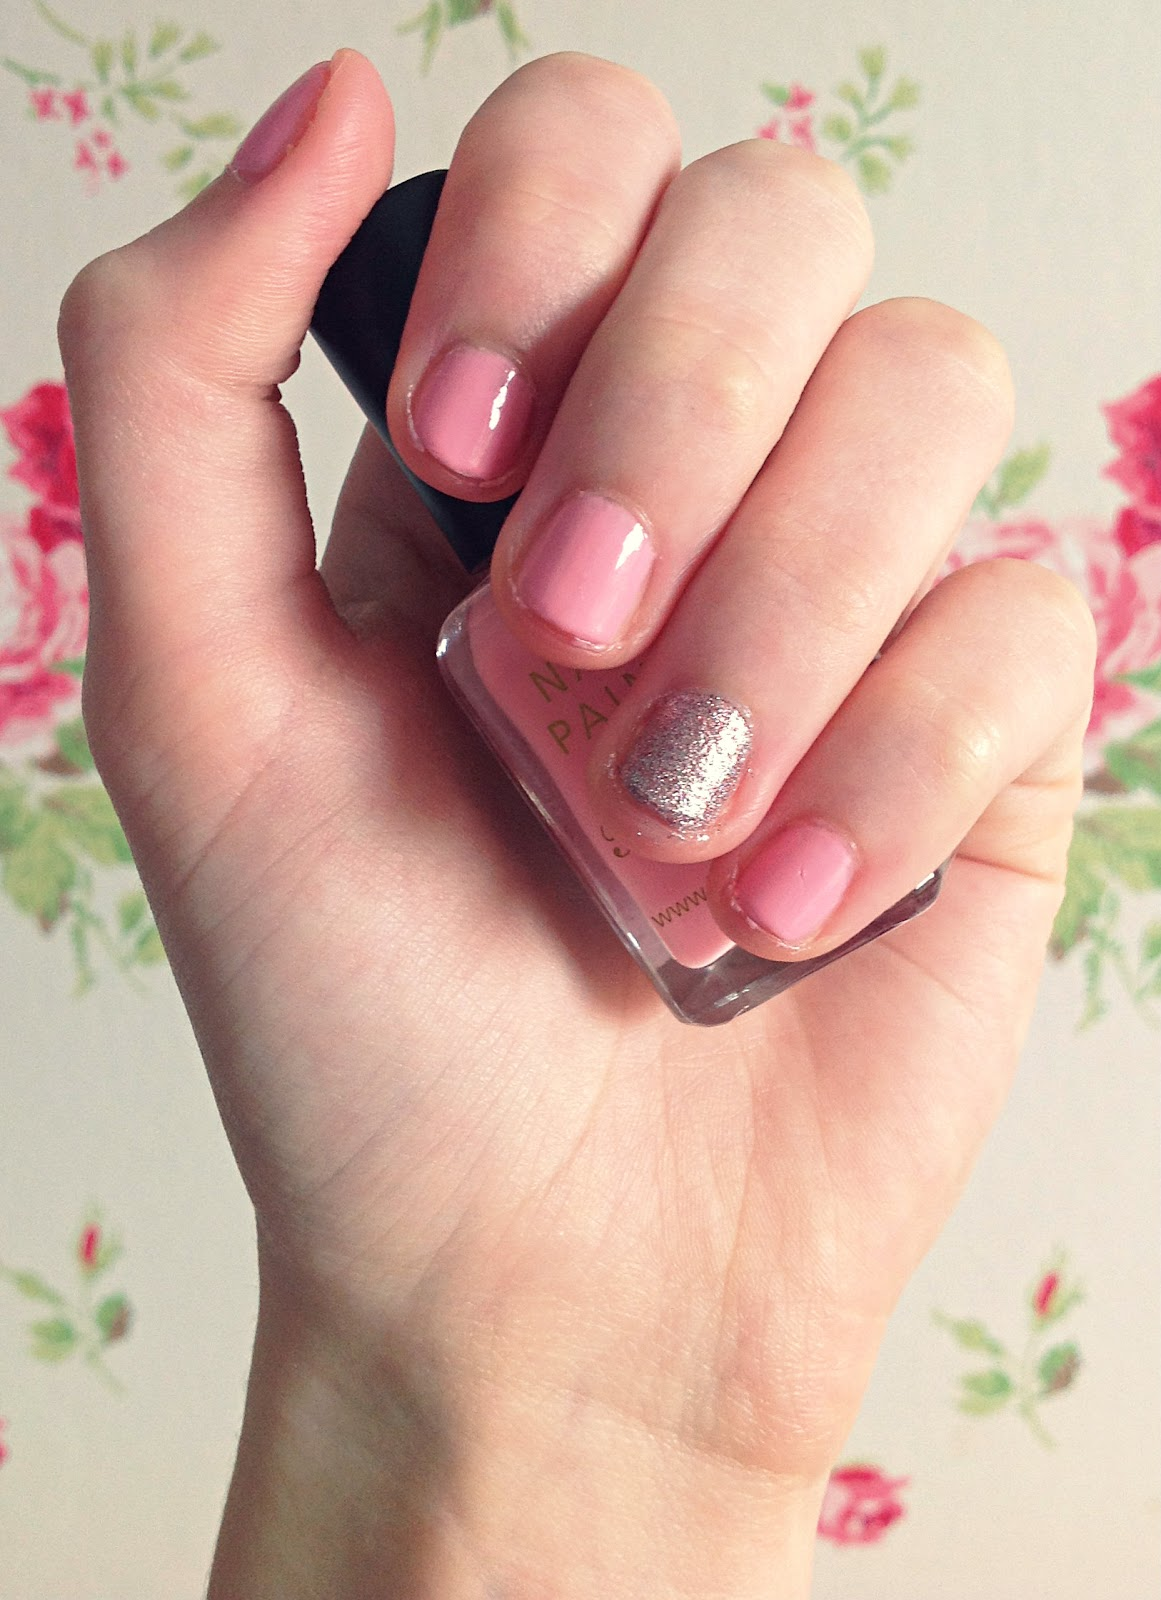 Belle-amie | Beauty, Fashion & Lifestyle Blog: Nail Polish Of The Day #2